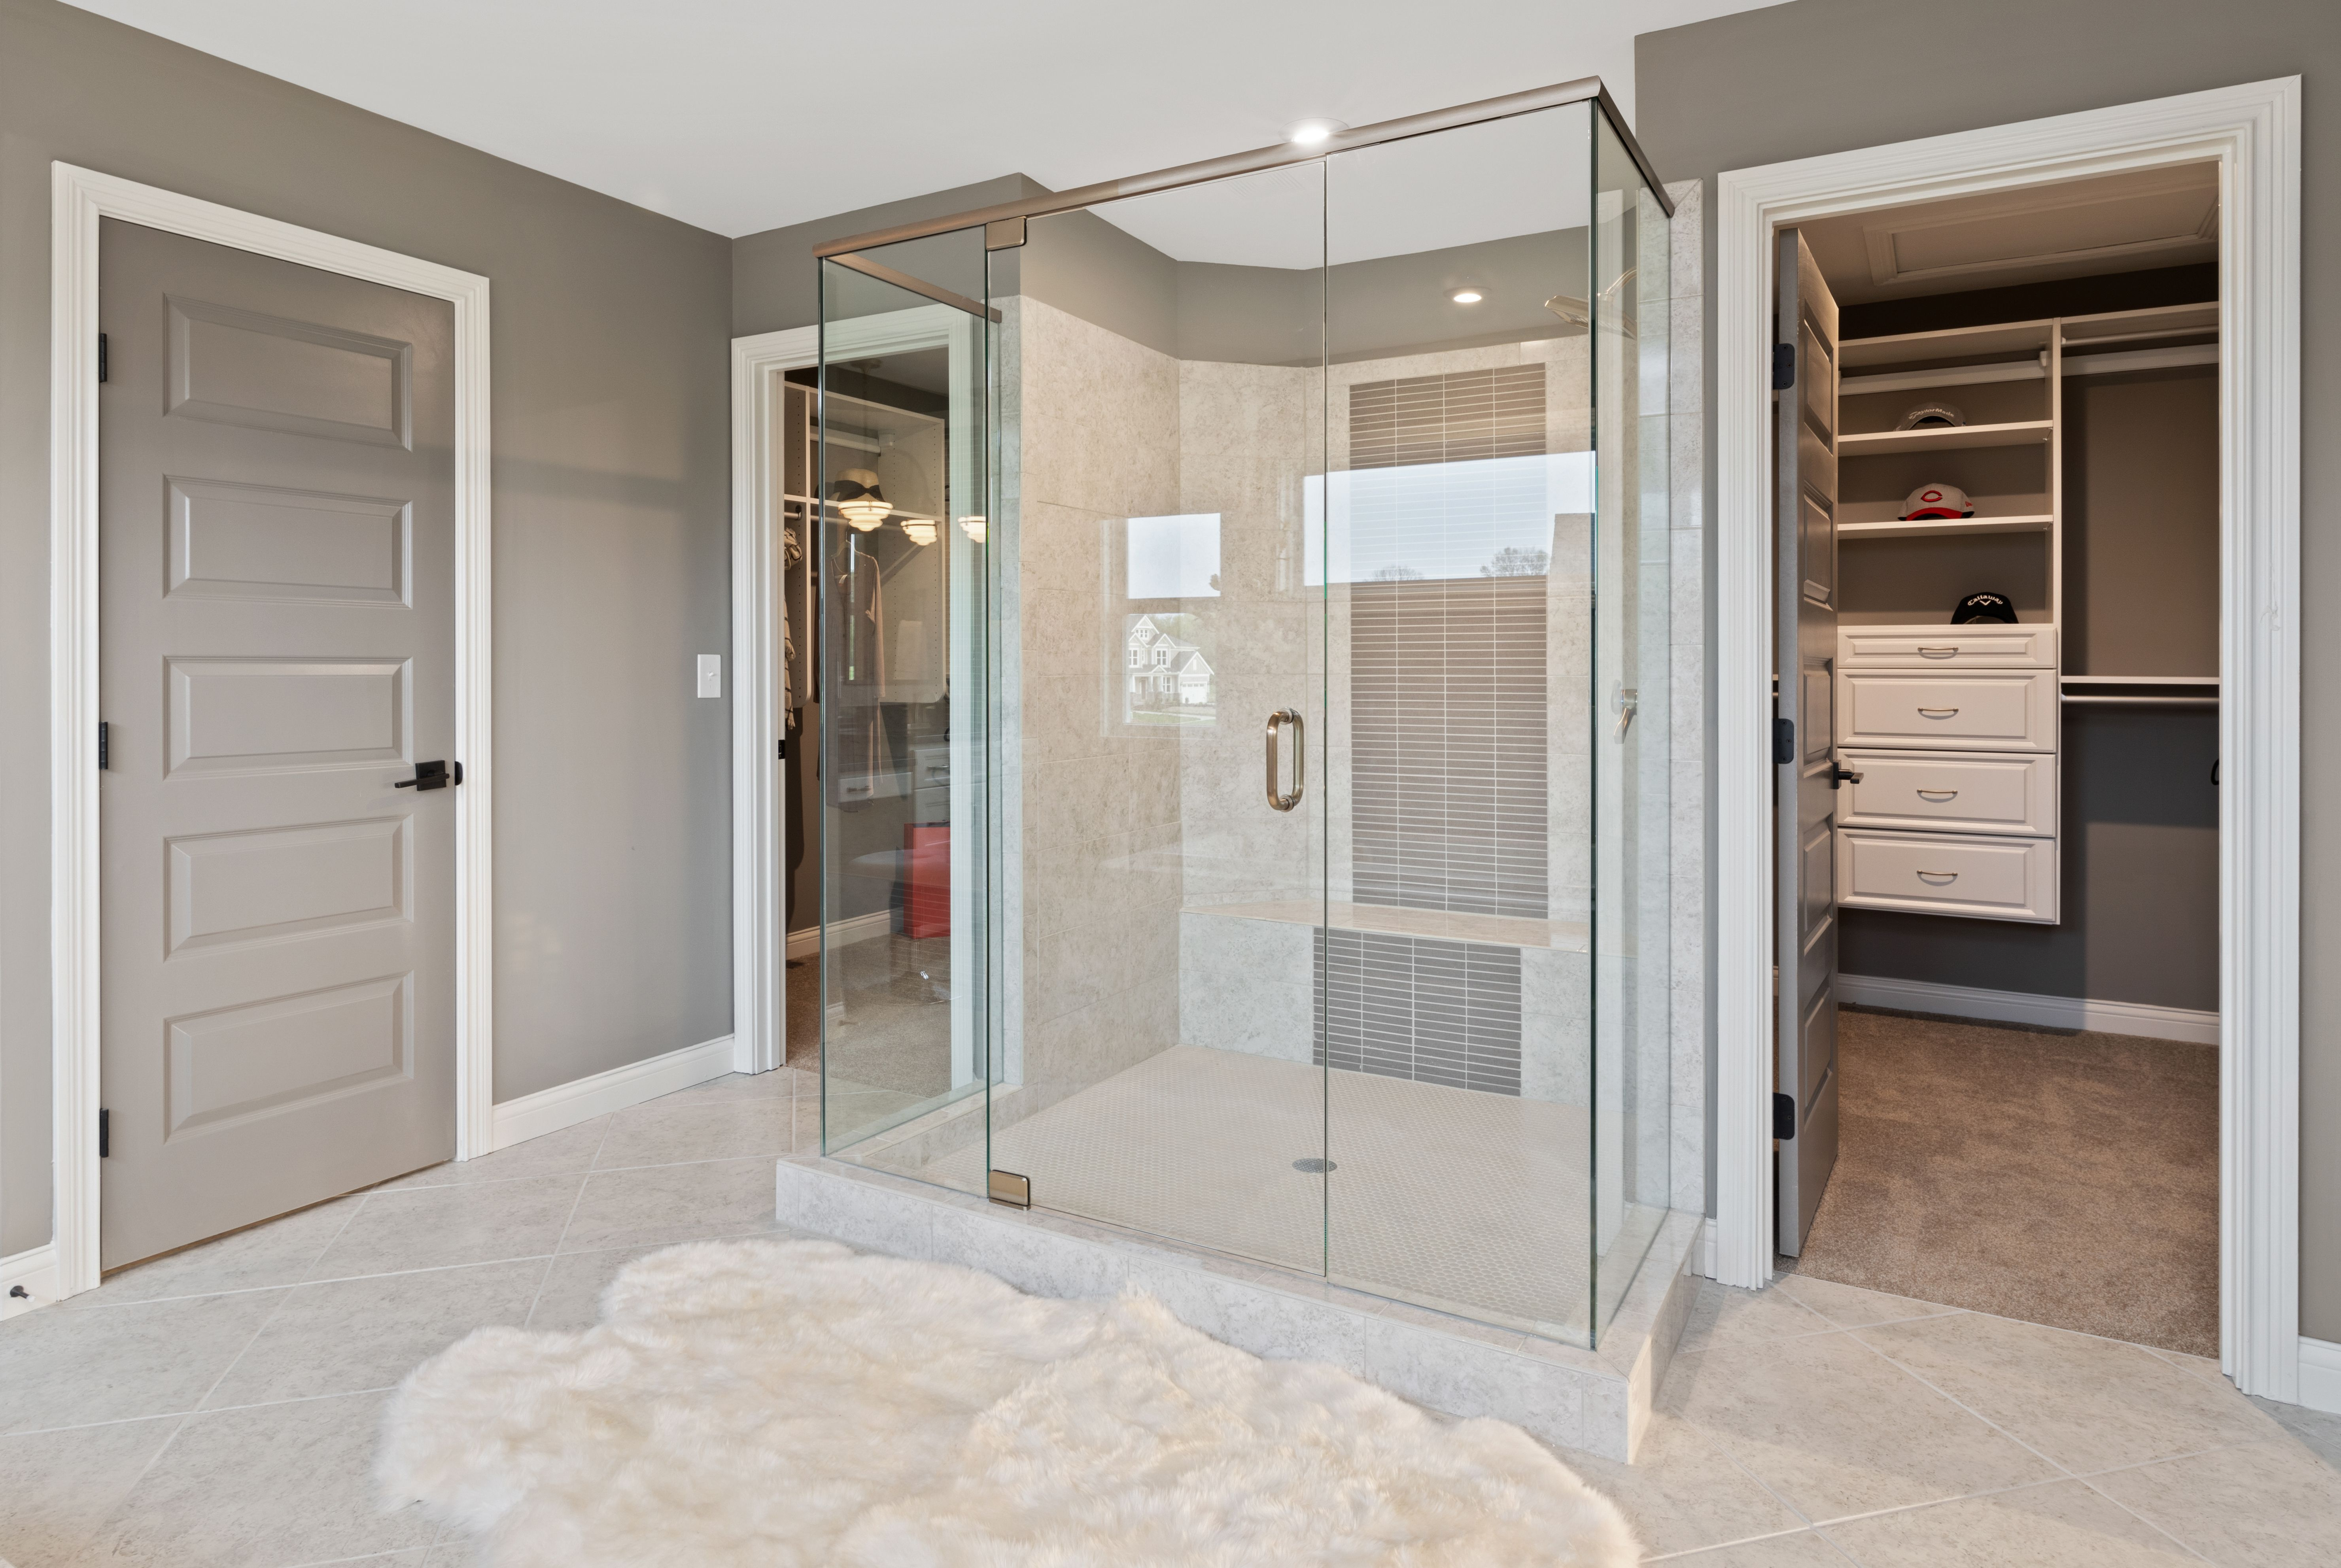 Bathroom featured in the Marshall By Fischer Homes  in Columbus, OH